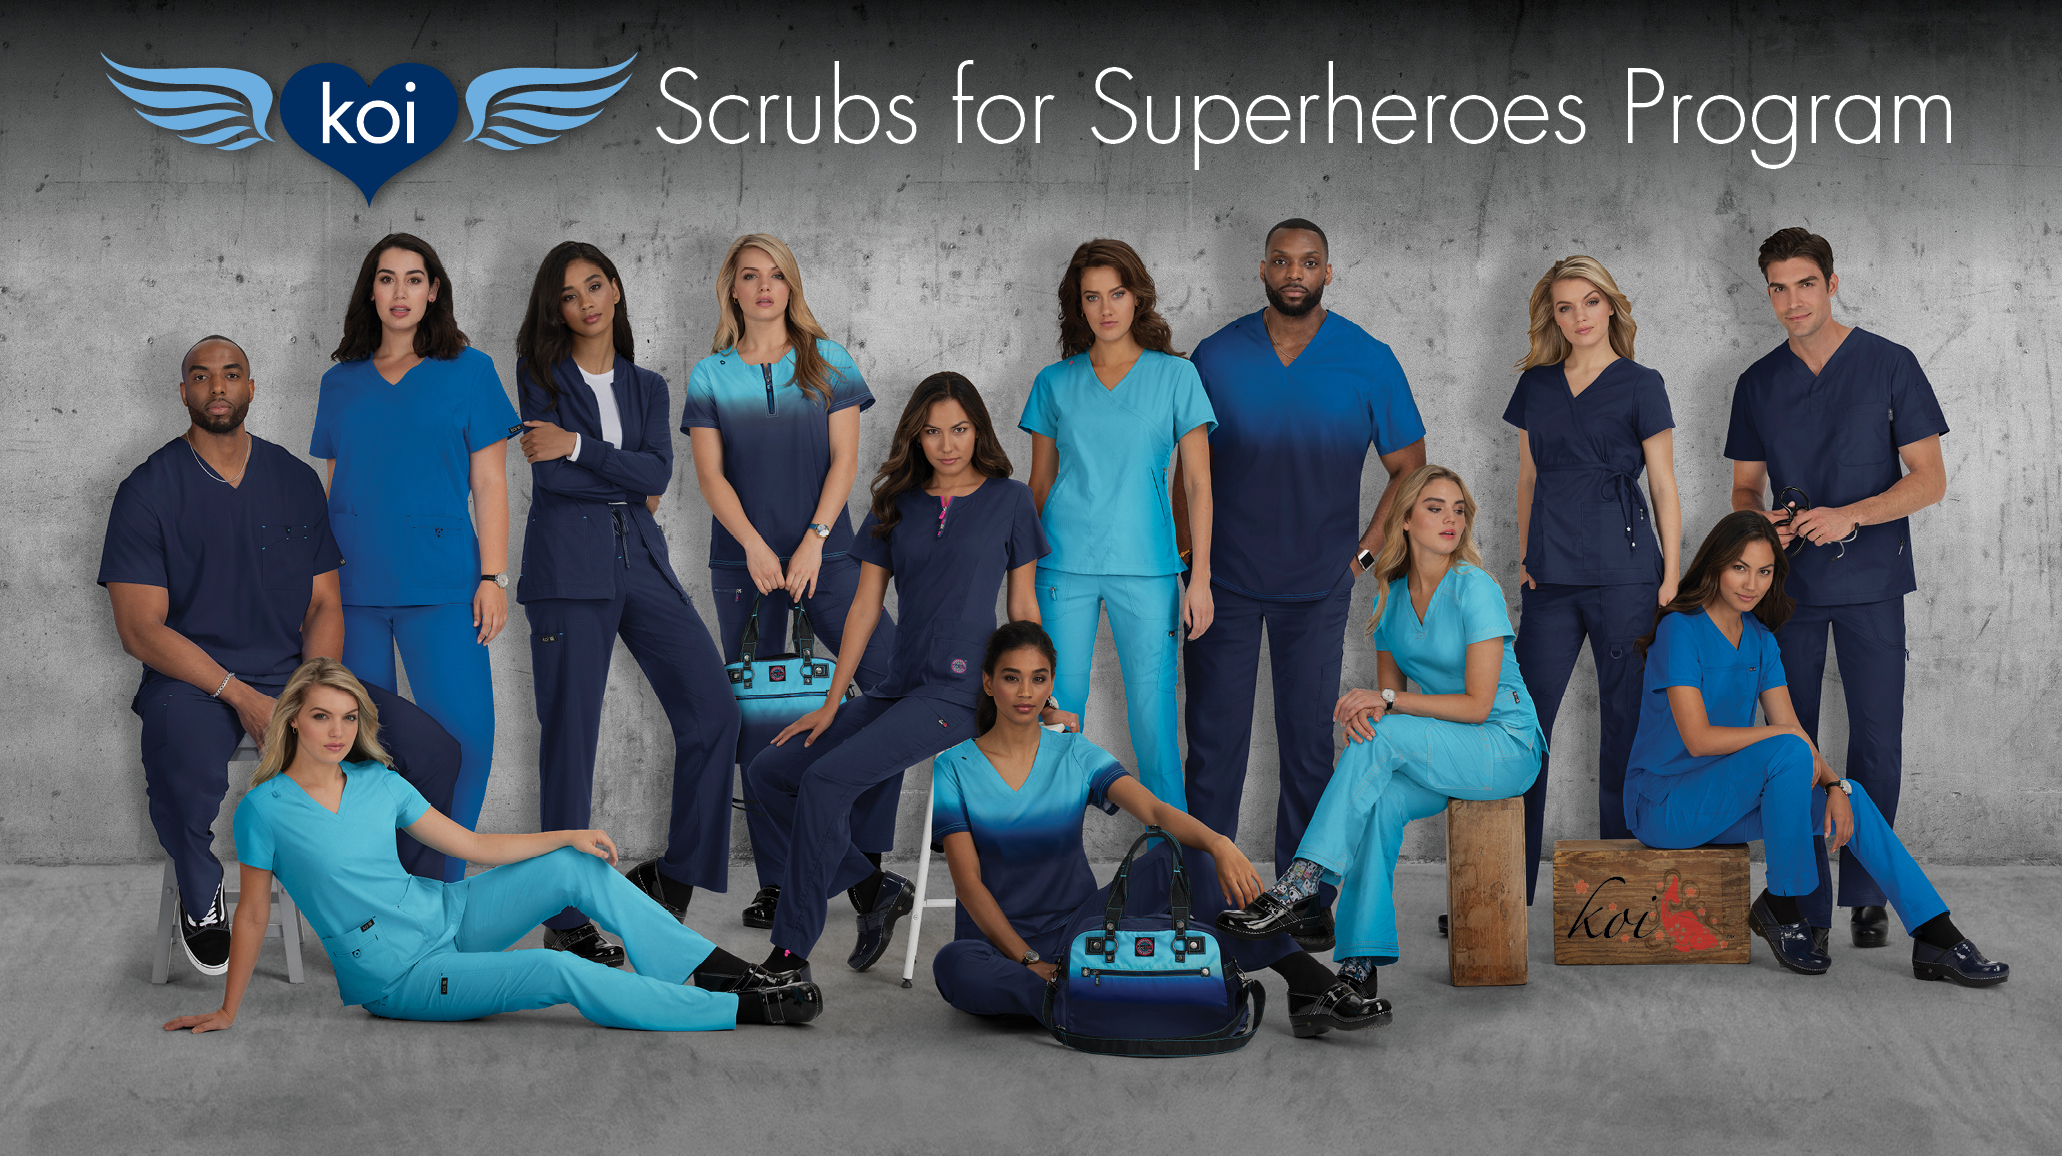 koi's Scrubs for Superheroes Program to Donate $250,000 in Scrubs to Hospitals and Nursing Homes Serving at the Frontlines of the COVID-19 Pandemic